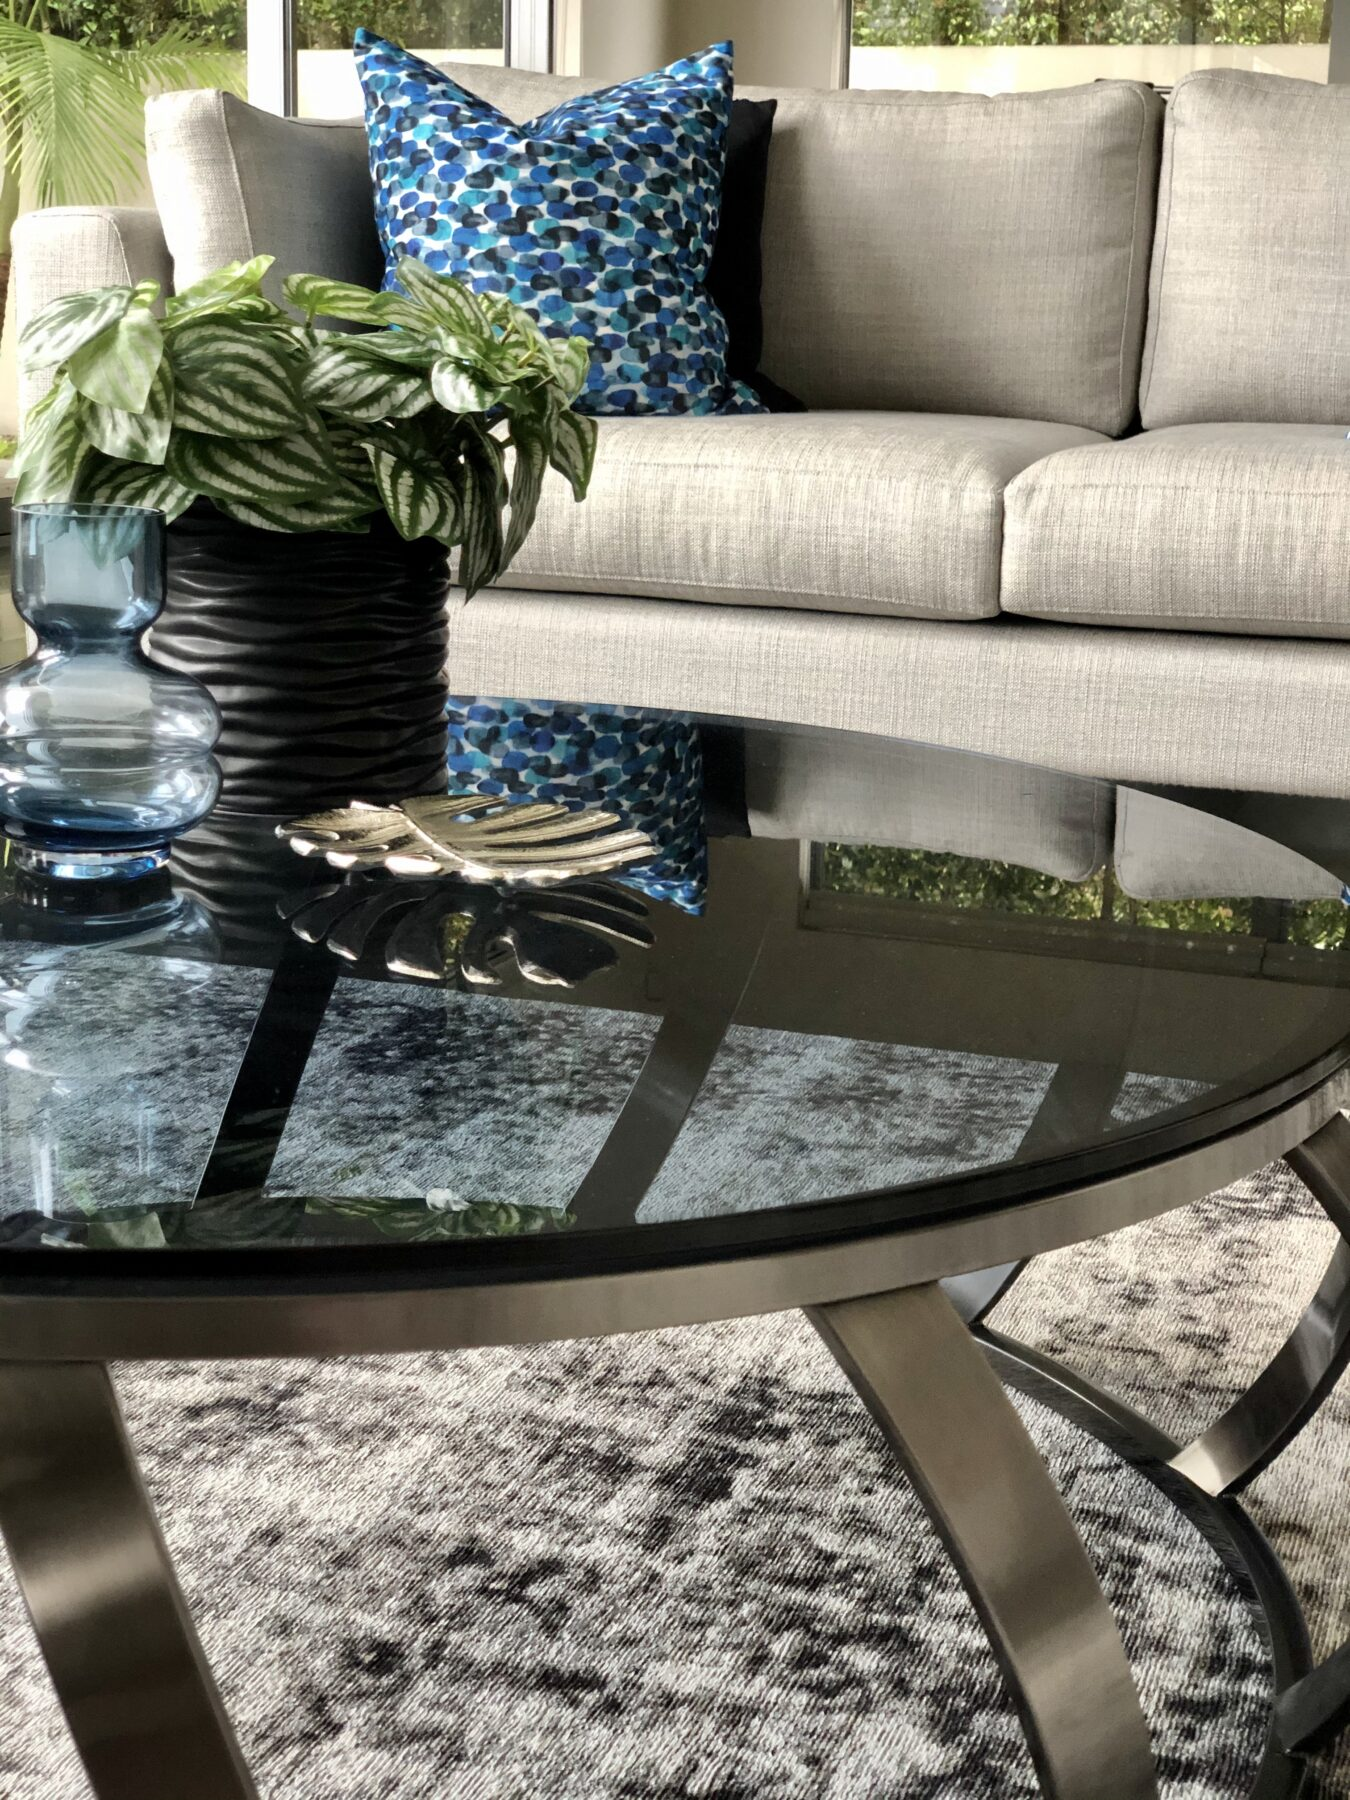 glamourous modern living room coffee table with black glass top and blue feature cushion